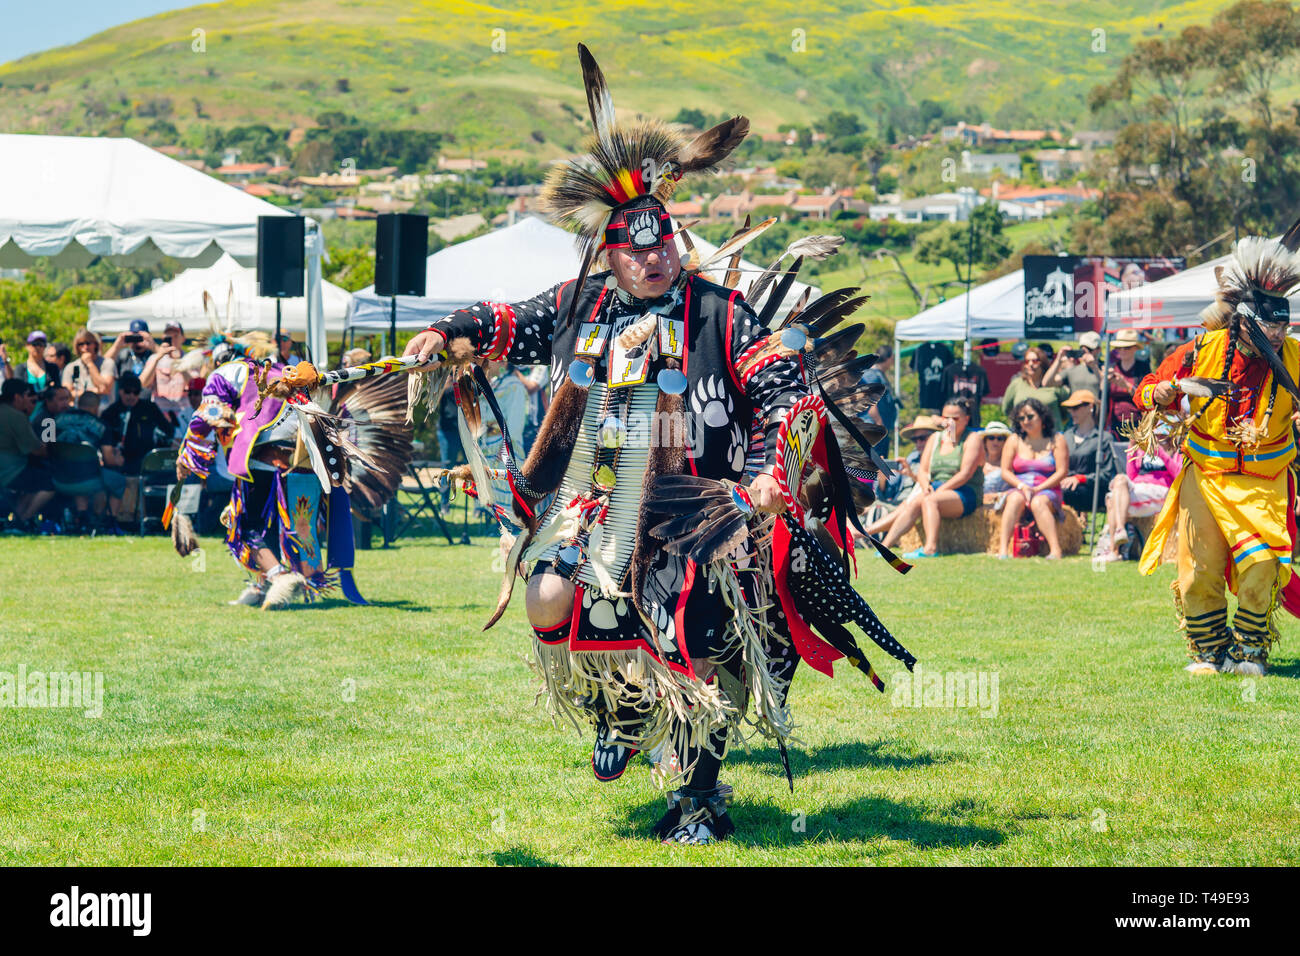 Several Native American dancers performs a dance to the drums at 2019 21st Annual Chumash Day Powwow and Intertribal Gathering, Malibu, California, Ap - Stock Image